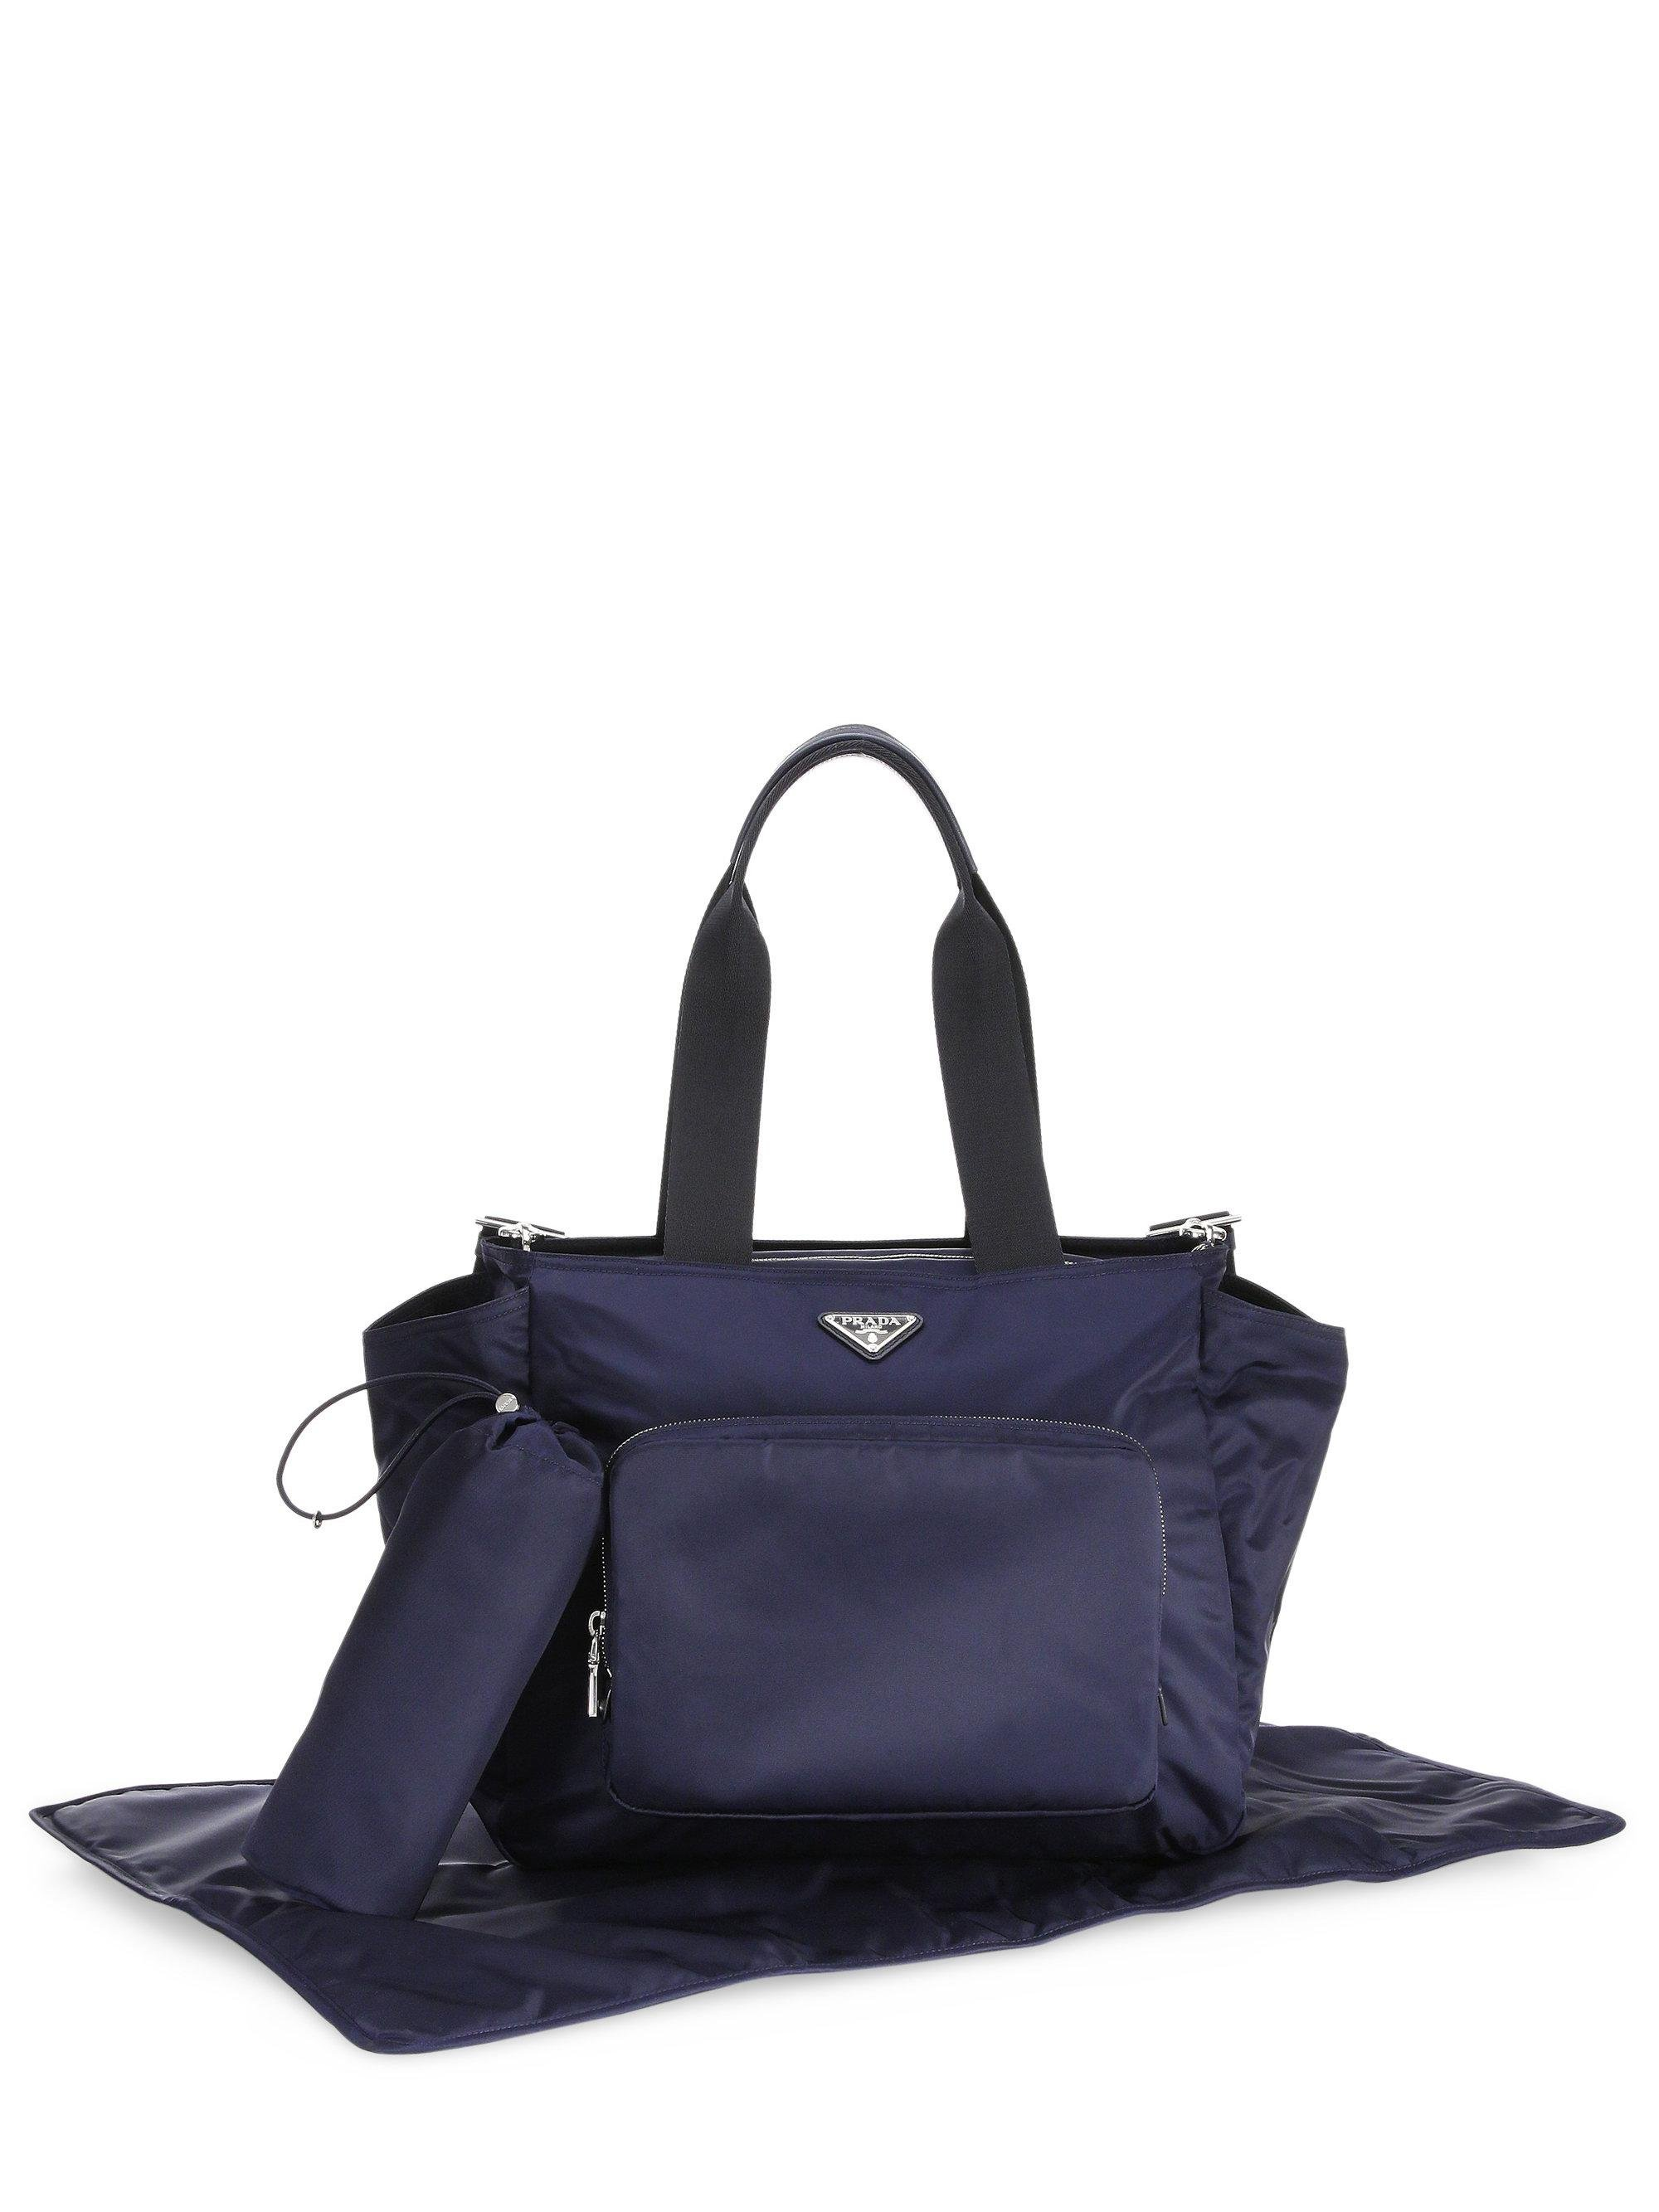 3252f936b54b ... italy lyst prada nylon diaper bag in blue 0cb9c 4645b